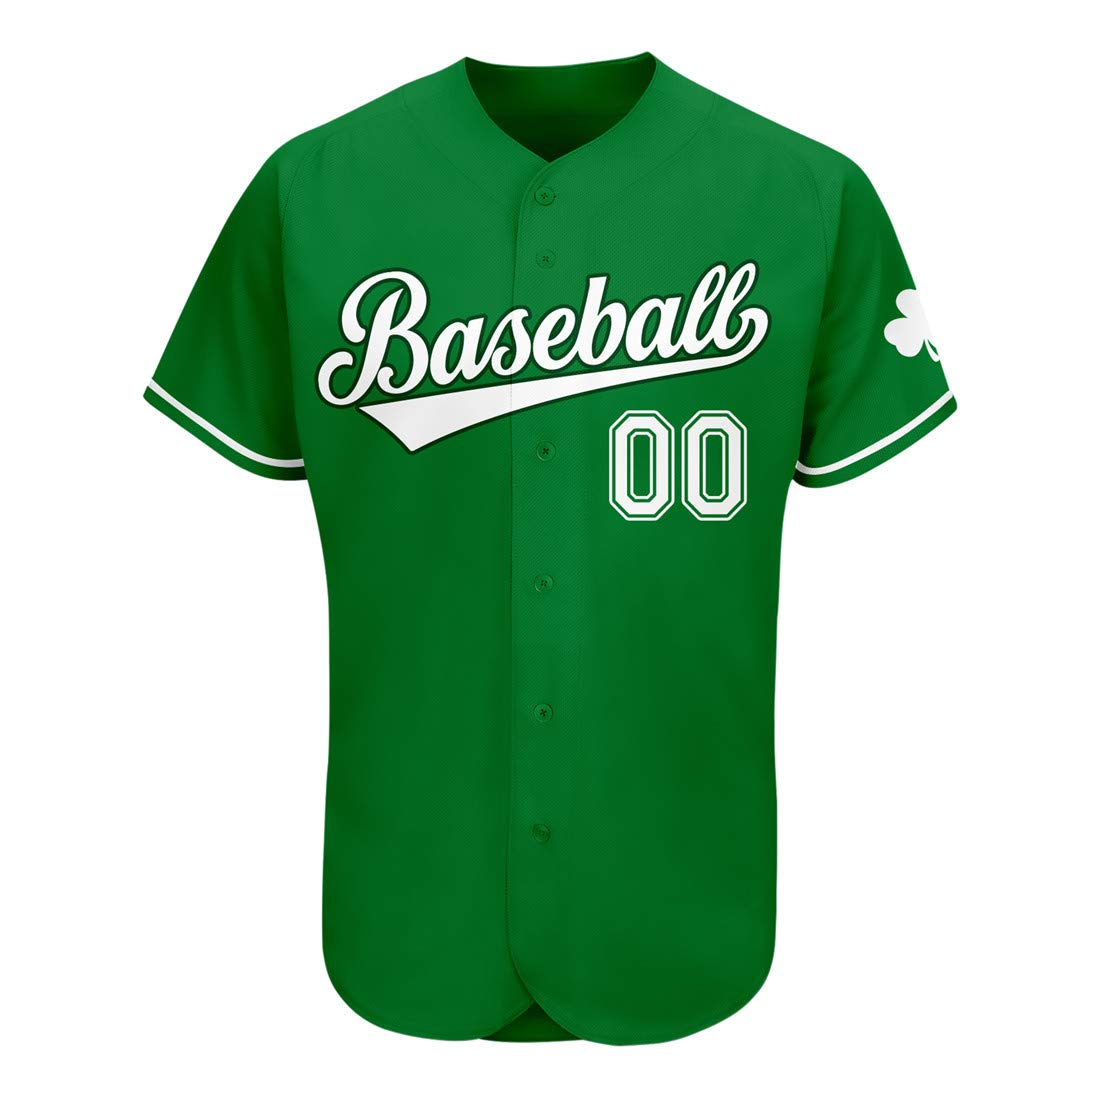 Custom Embroidered Baseball St Patrick's Day Jersey Design Personalized Team Name and Number for Men/Women/Youth-Green